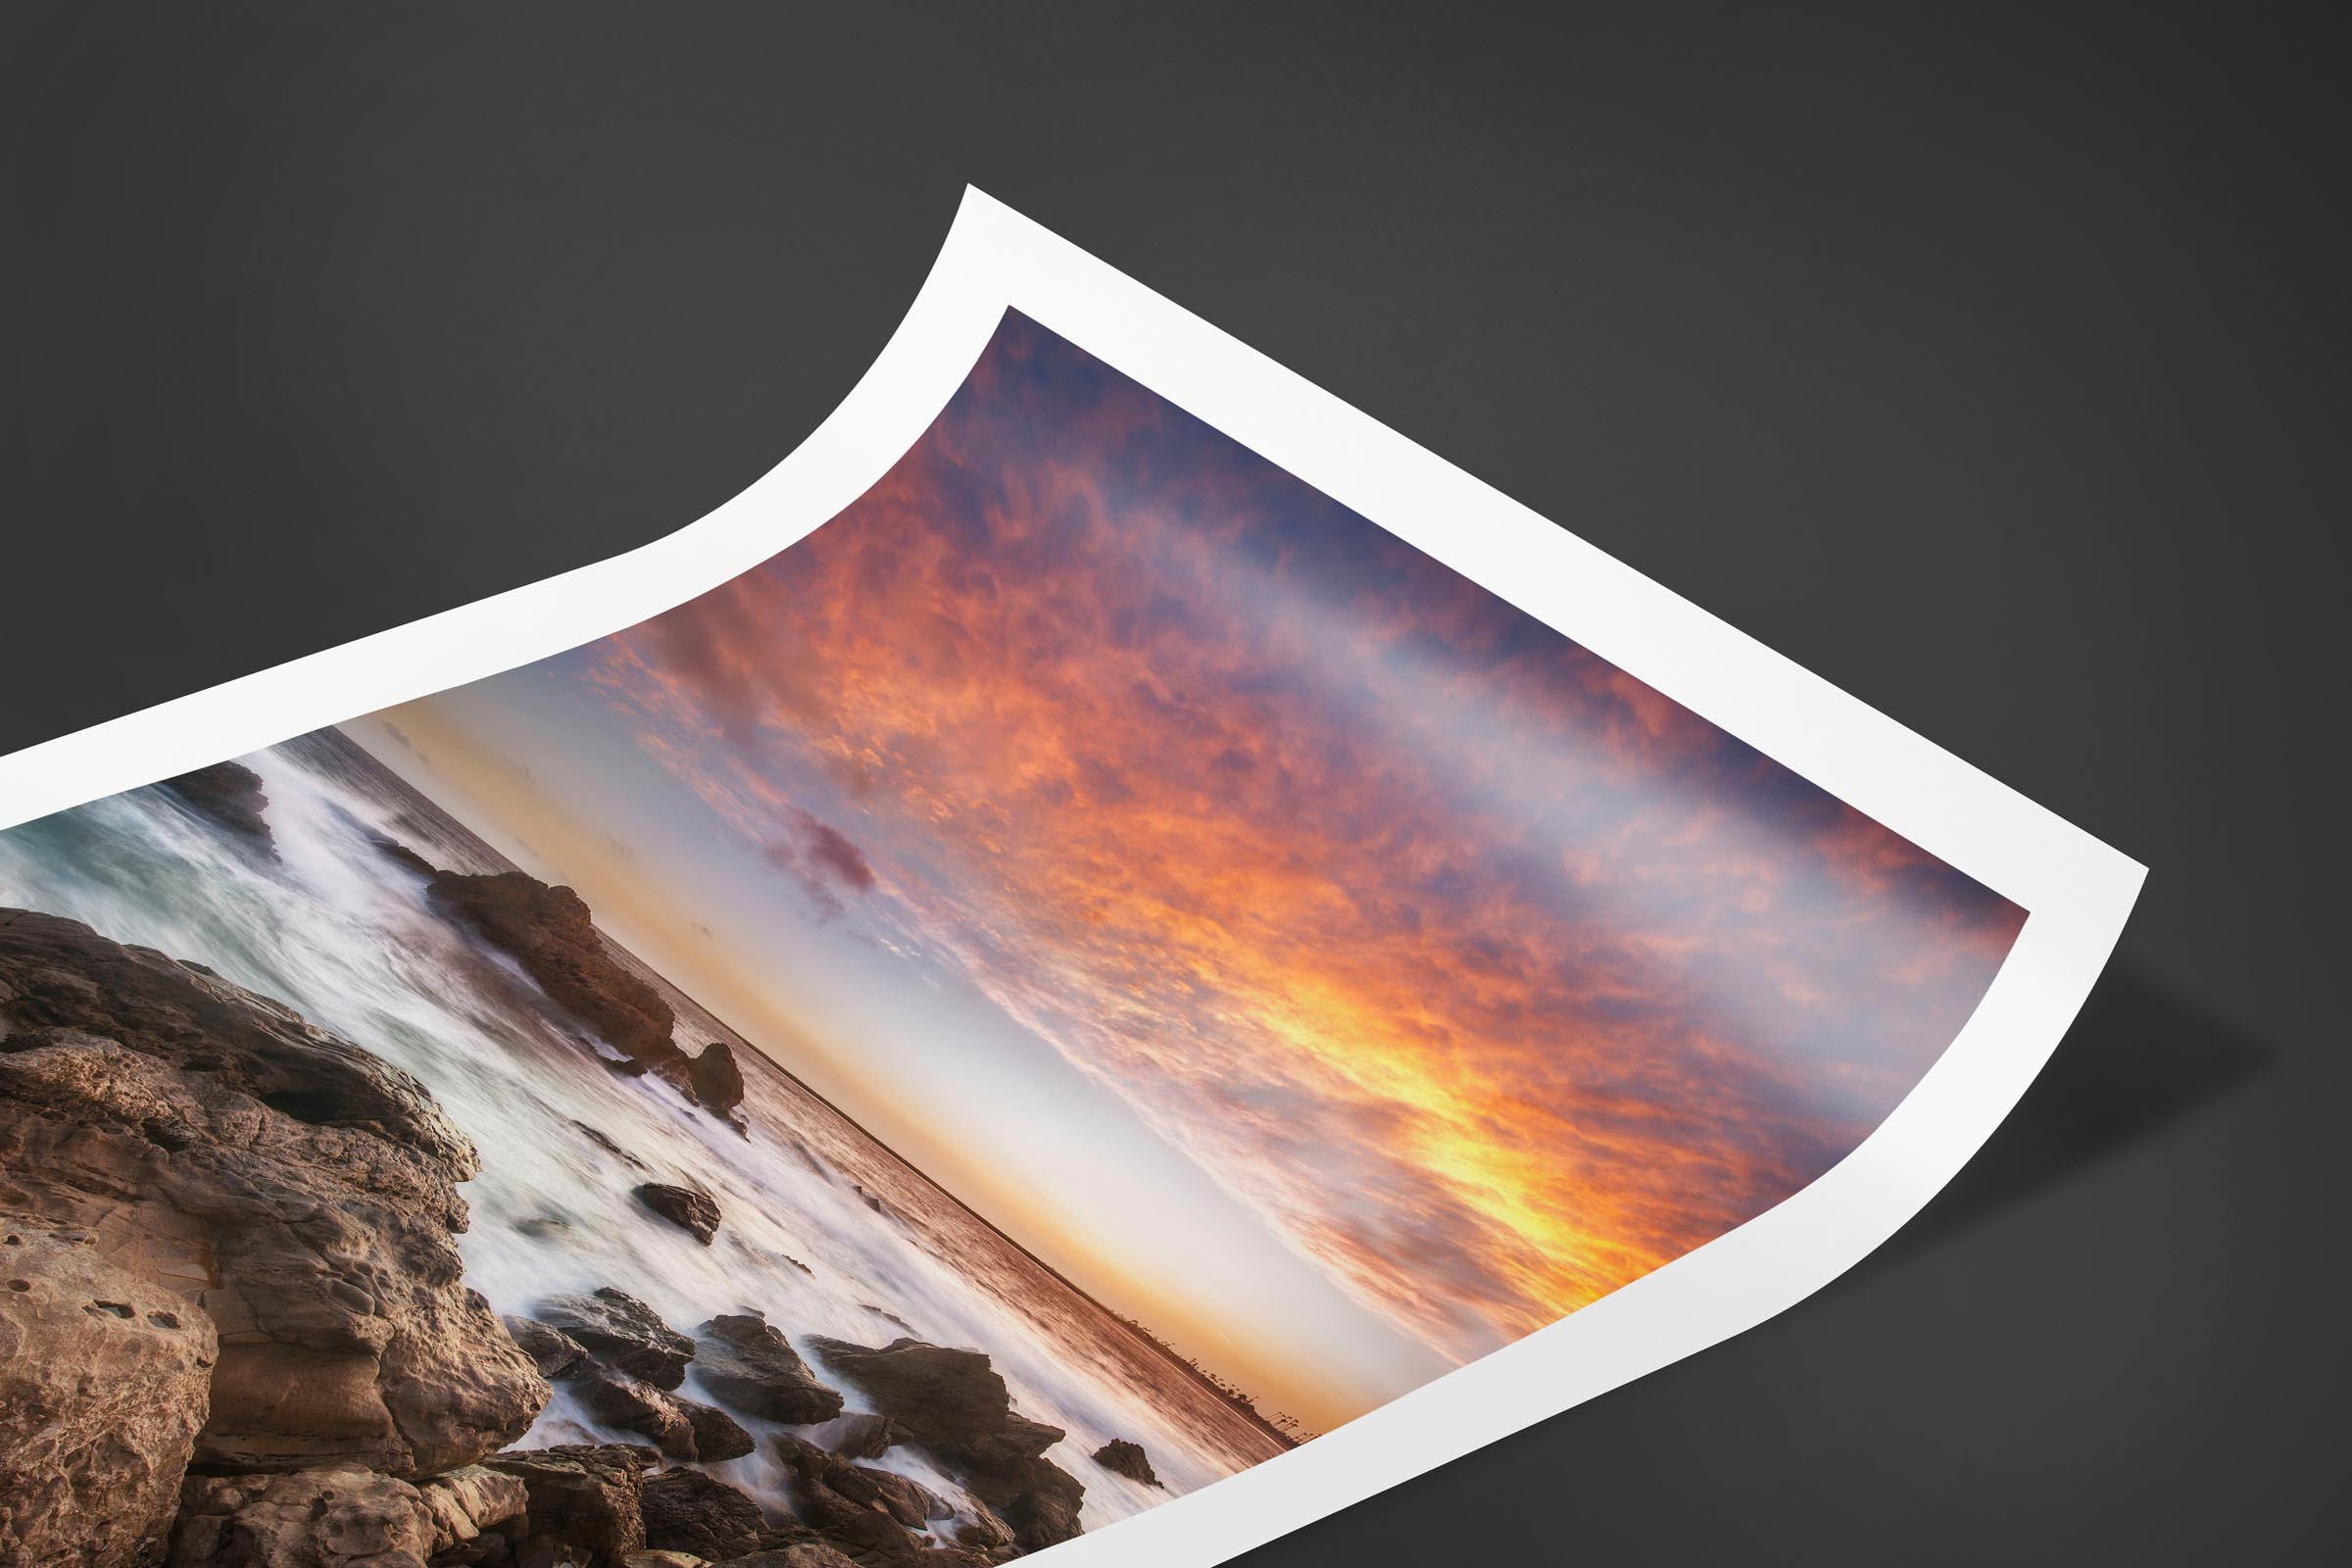 Fine art limited edition print of Ocean Sunset in Huntington Beach, California by Brent Goldman Photography